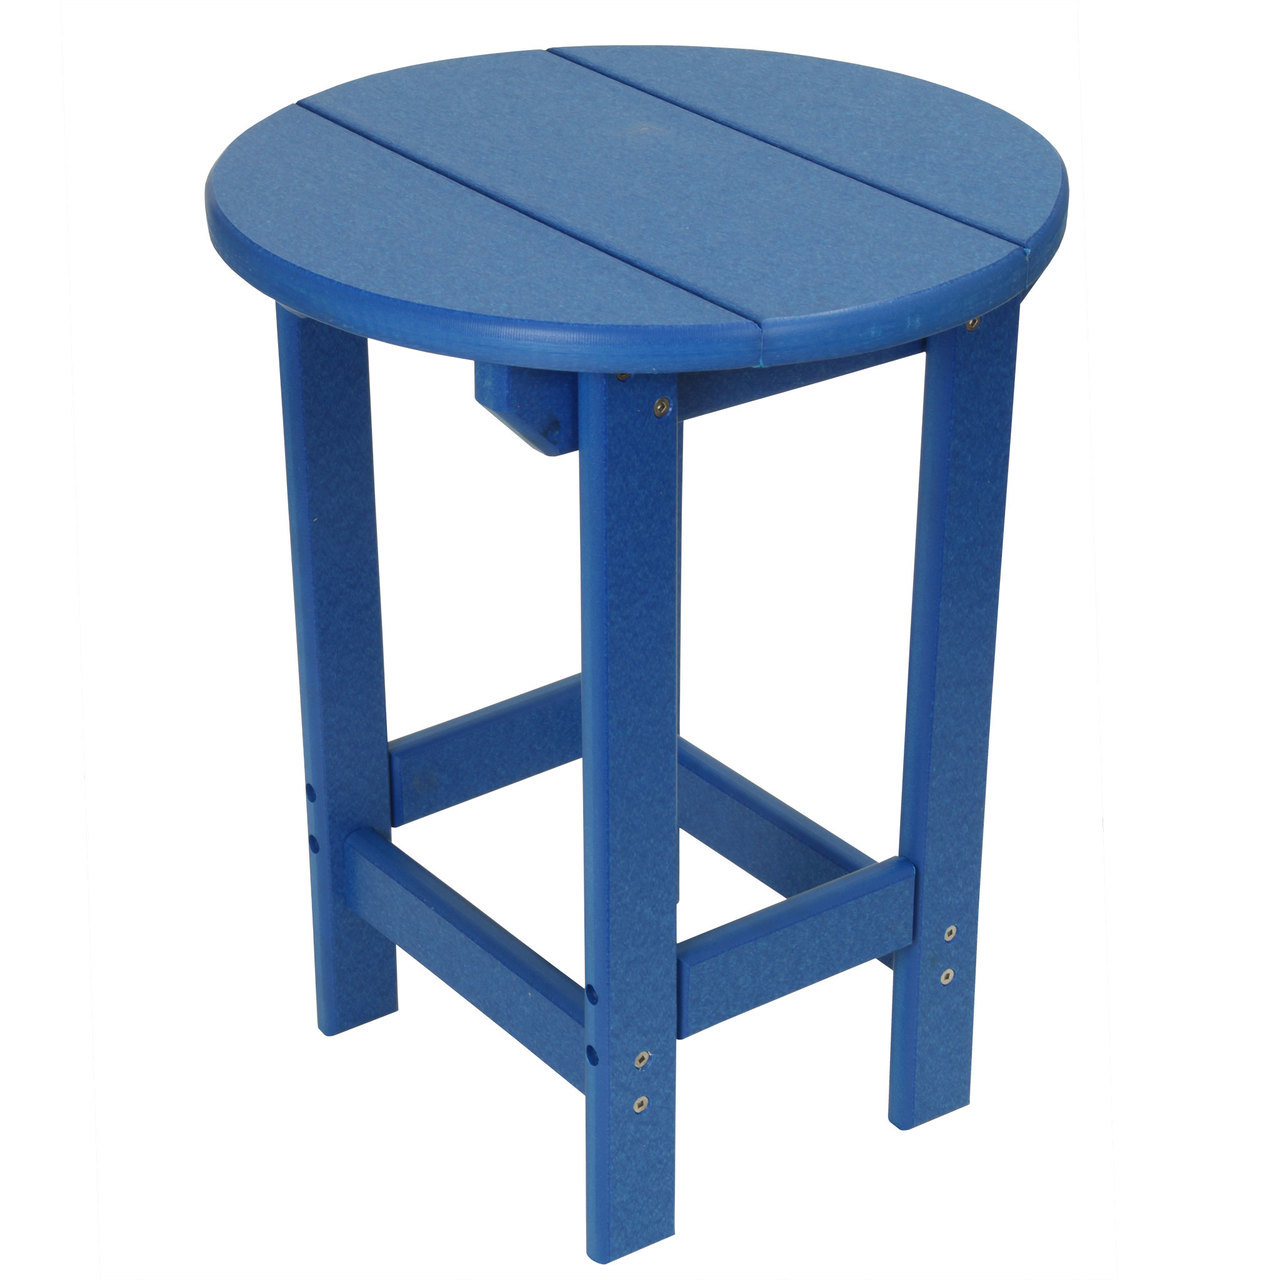 outer banks poly lumber round side table sidetable outdoor blue royal large square marble coffee indoor bistro dimensions nate berkus furniture foyer pier promo code safavieh